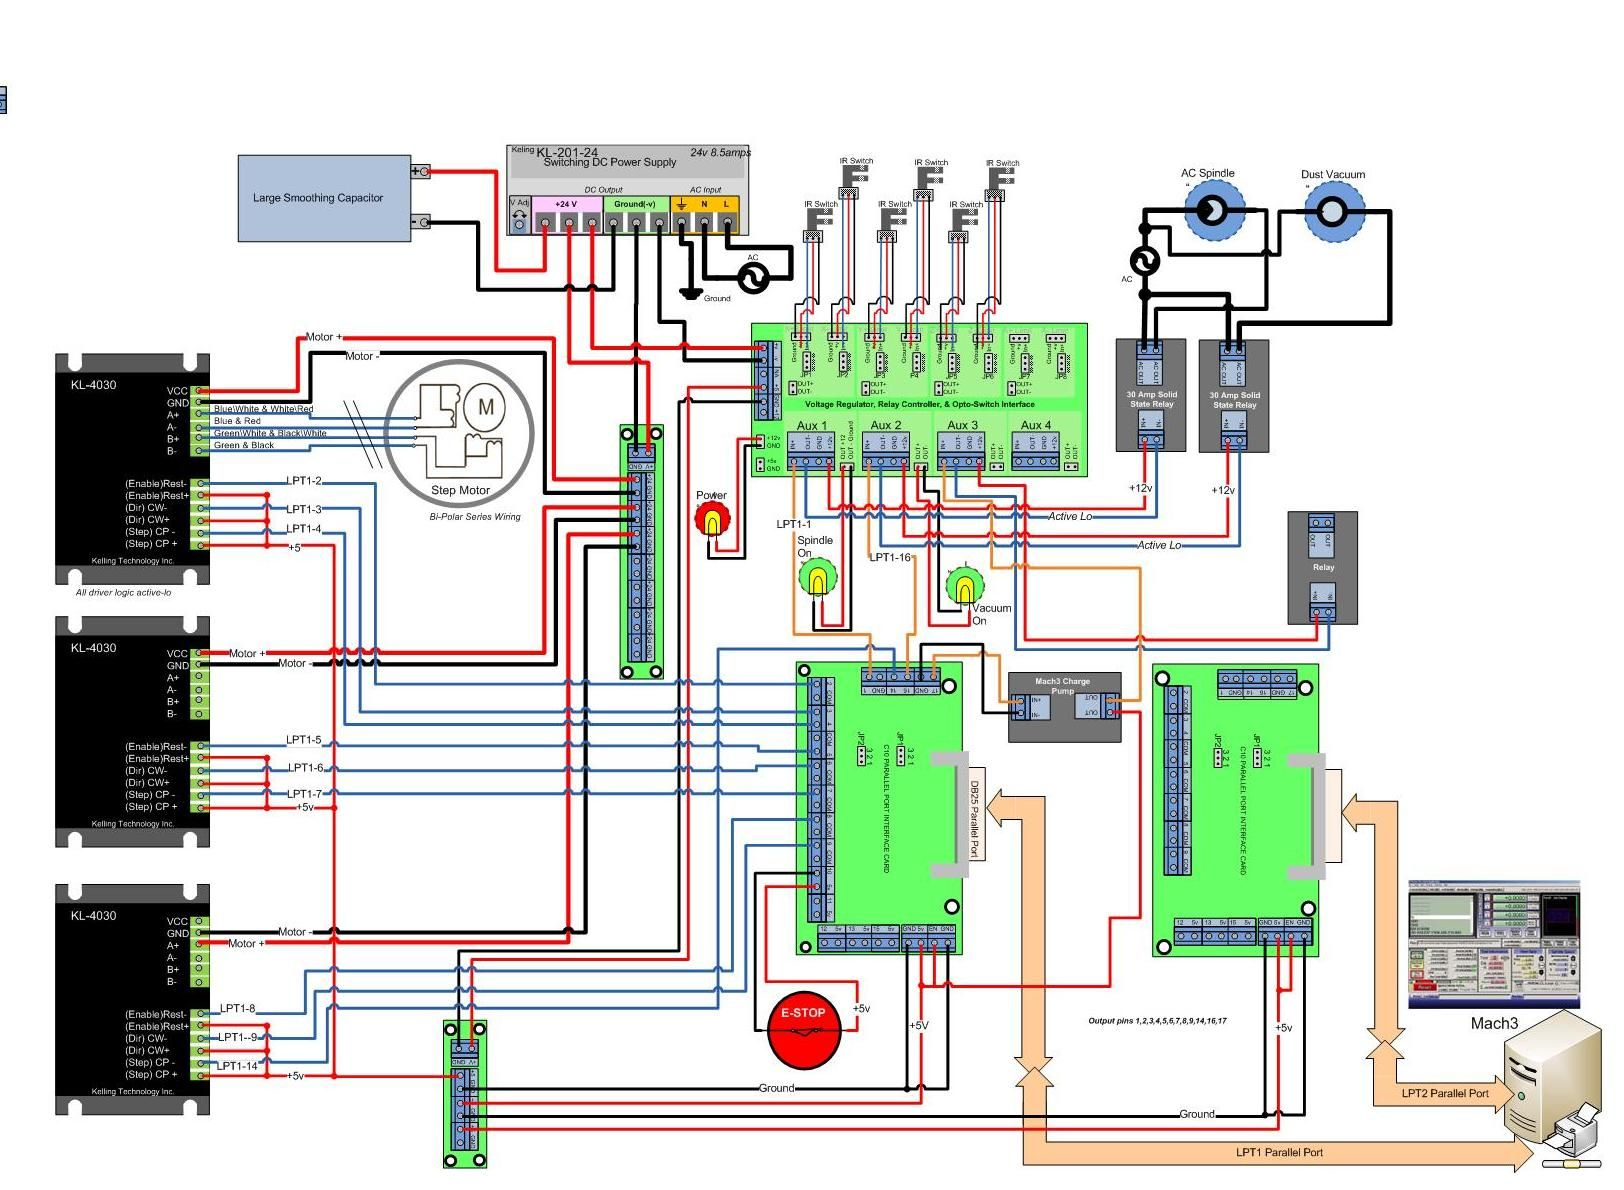 cnc wiring diagram cnc cnc cnc router and cnc machine